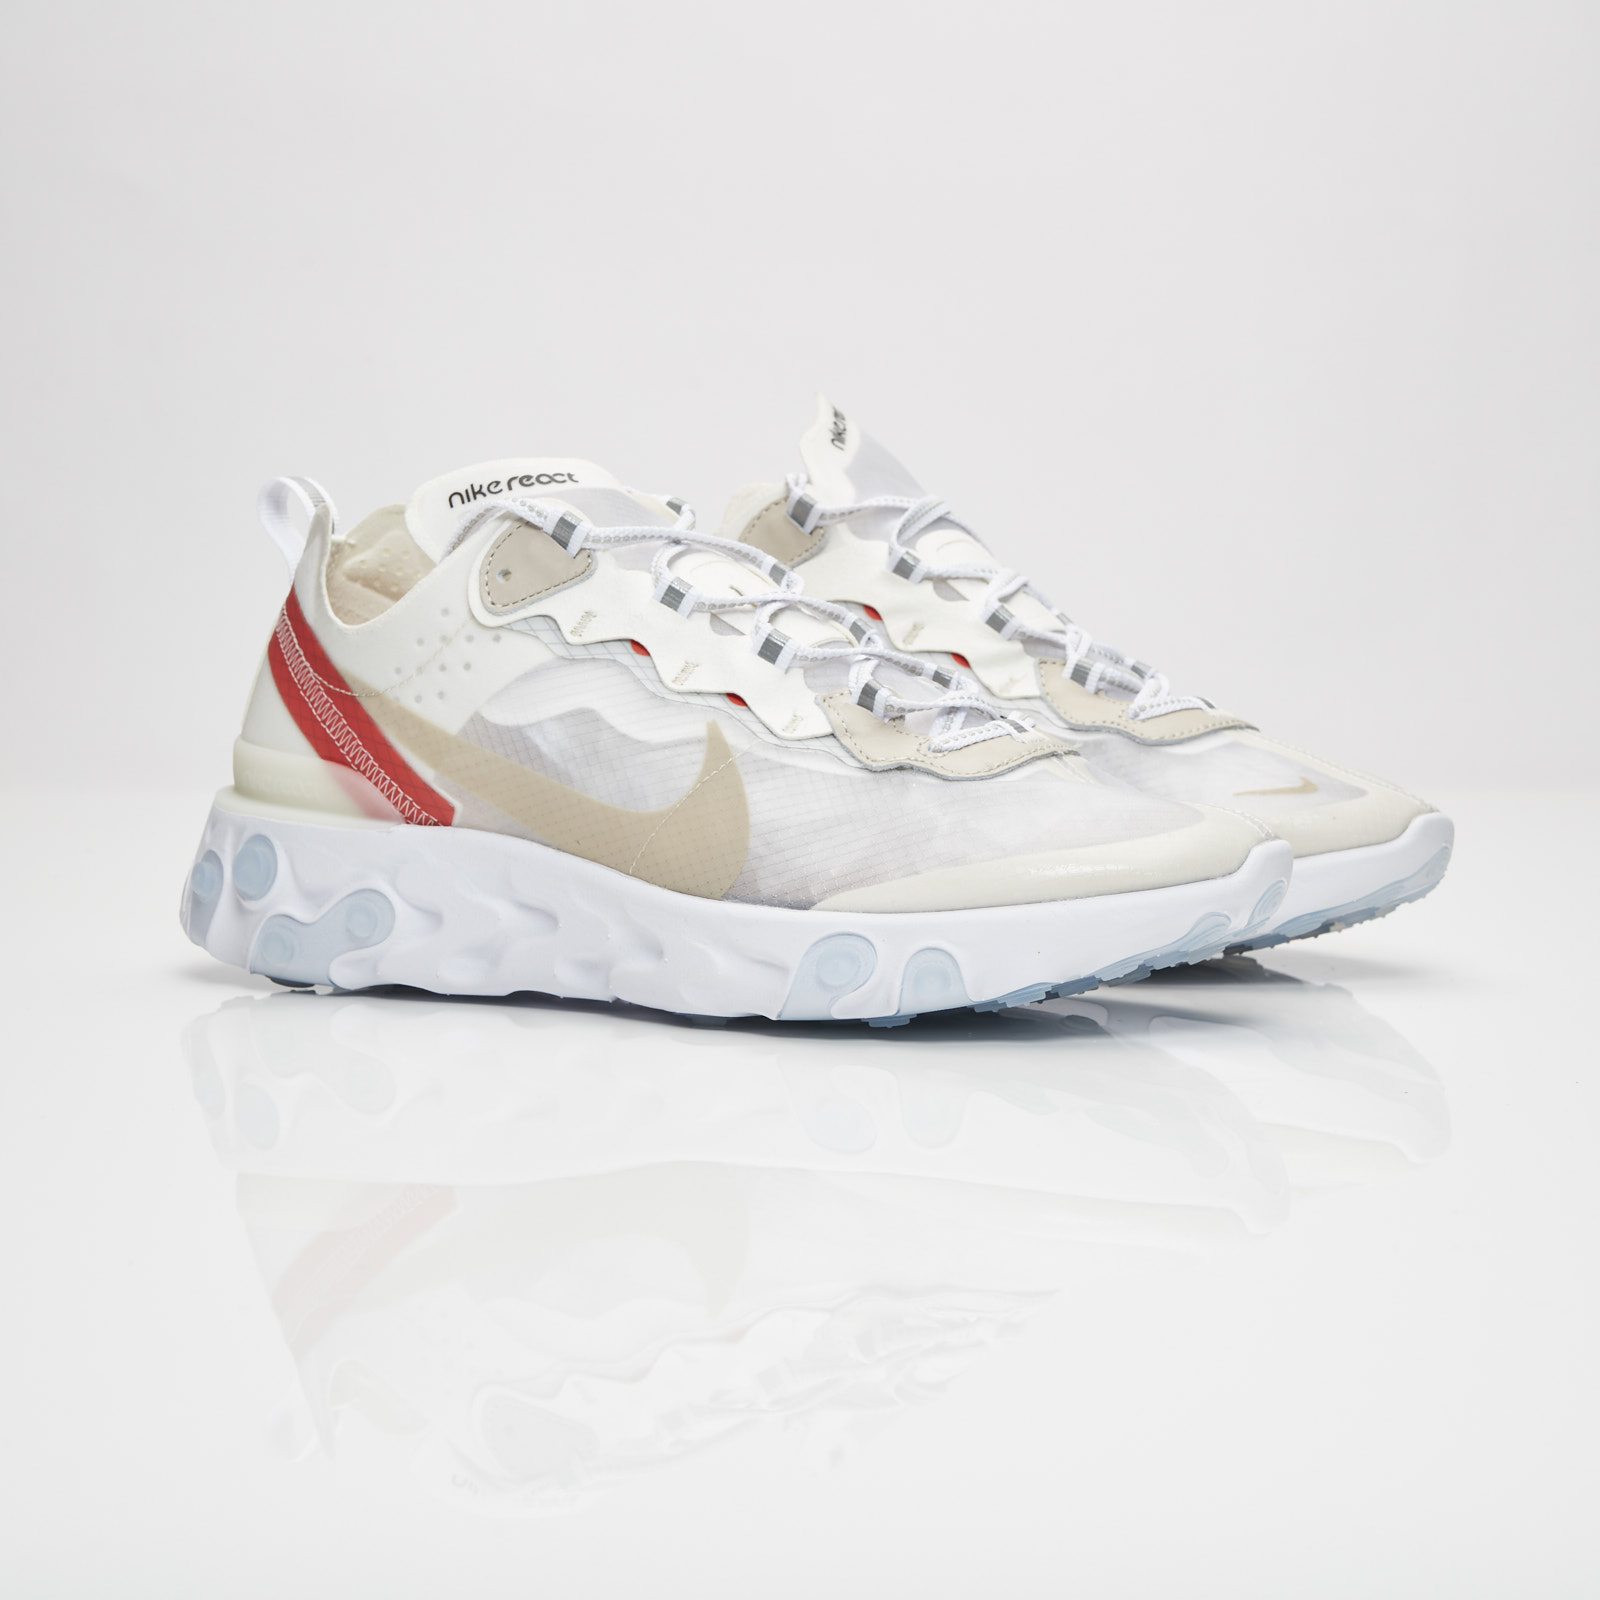 ae53e5b1cc808 Nike React Element 87 - Aq1090-100 - Sneakersnstuff